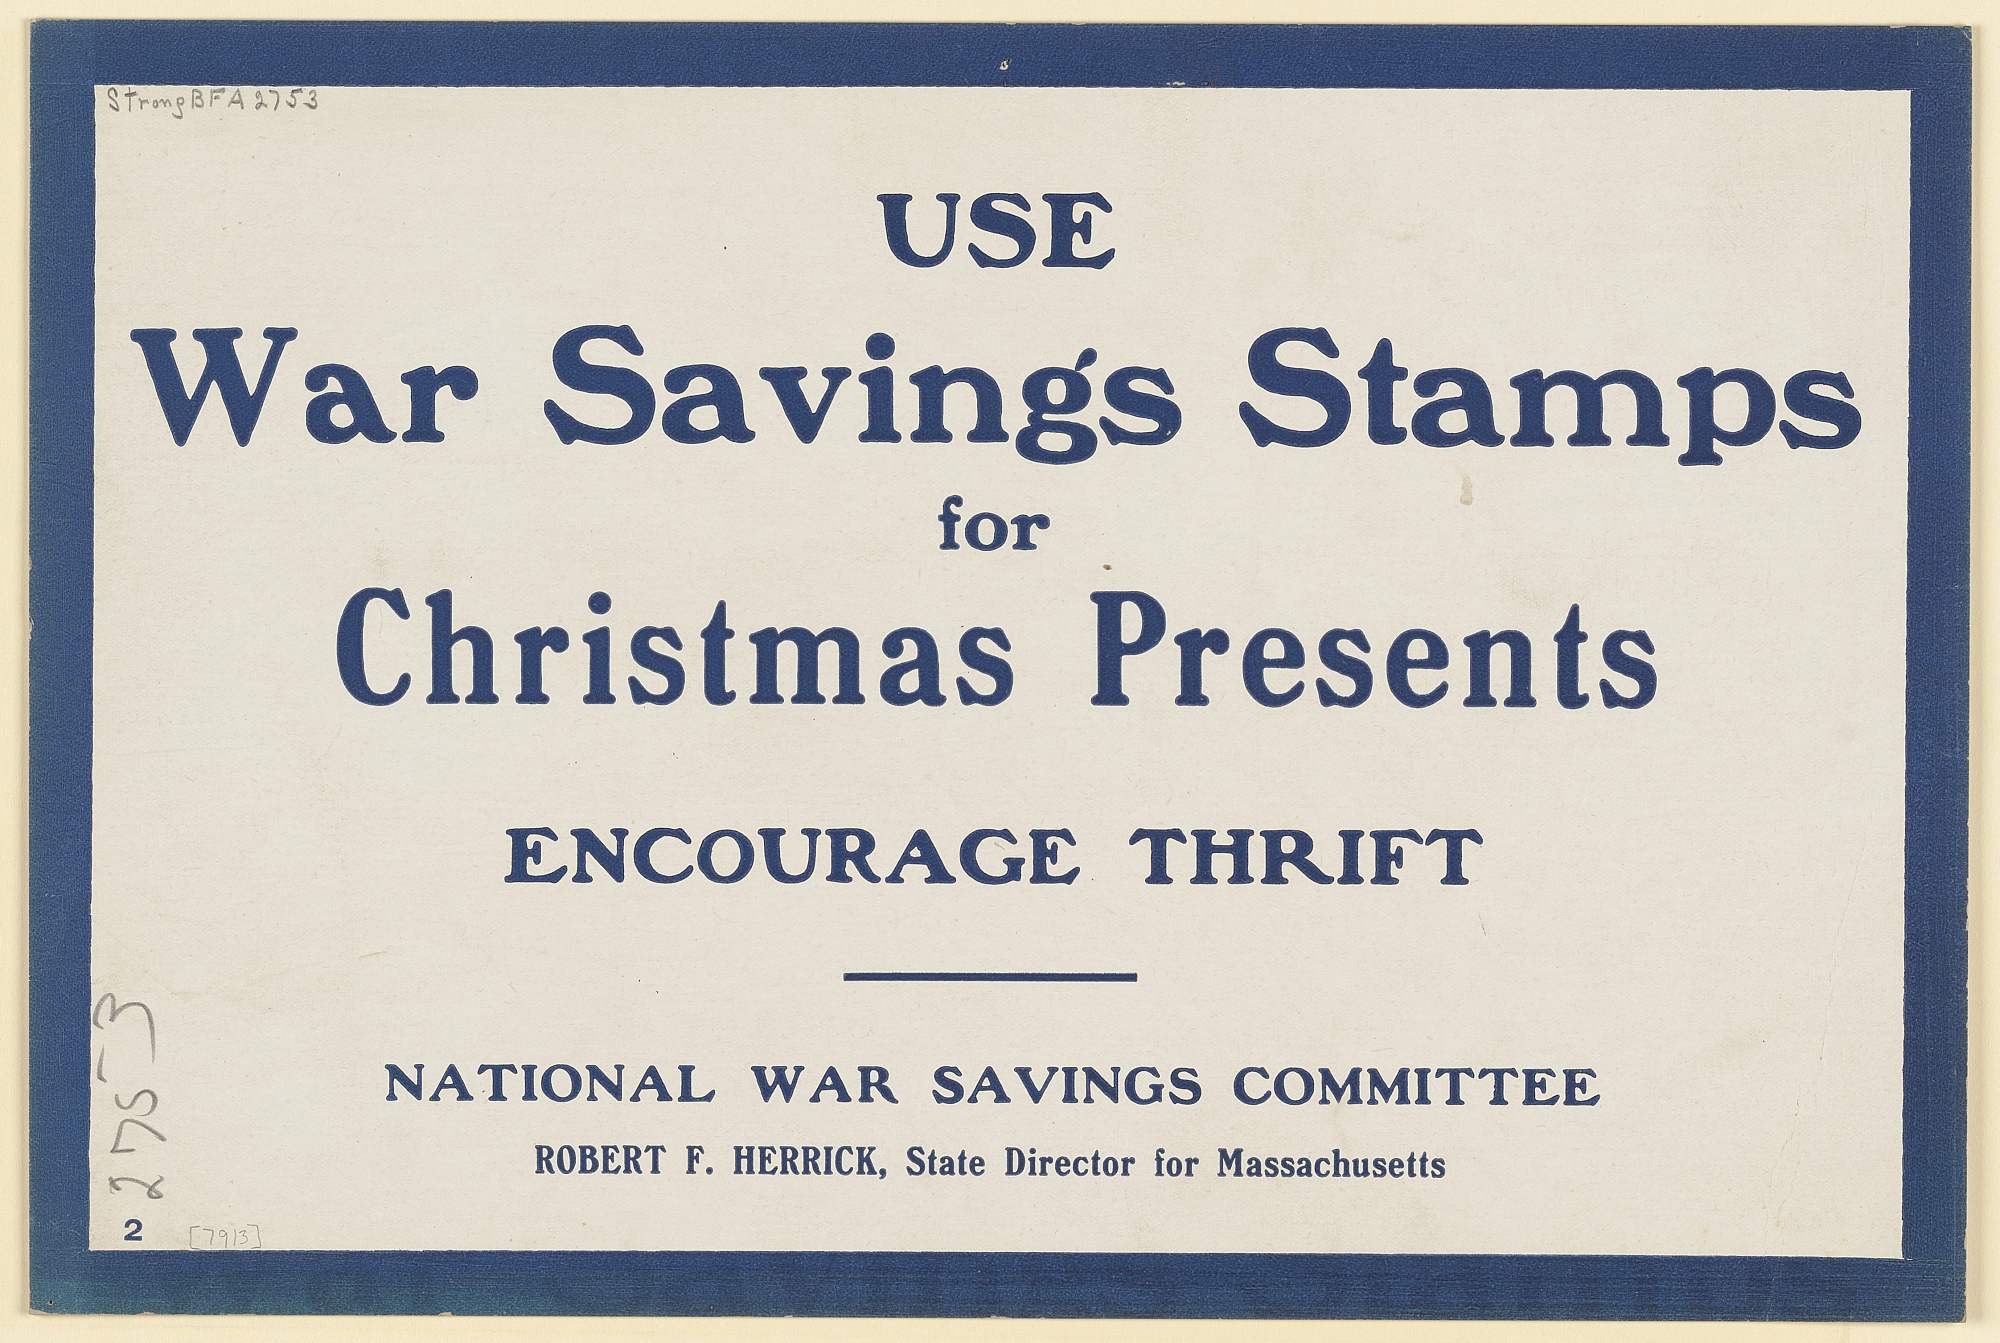 Use War Savings Stamps for Christmas Presents Encourage Thrift